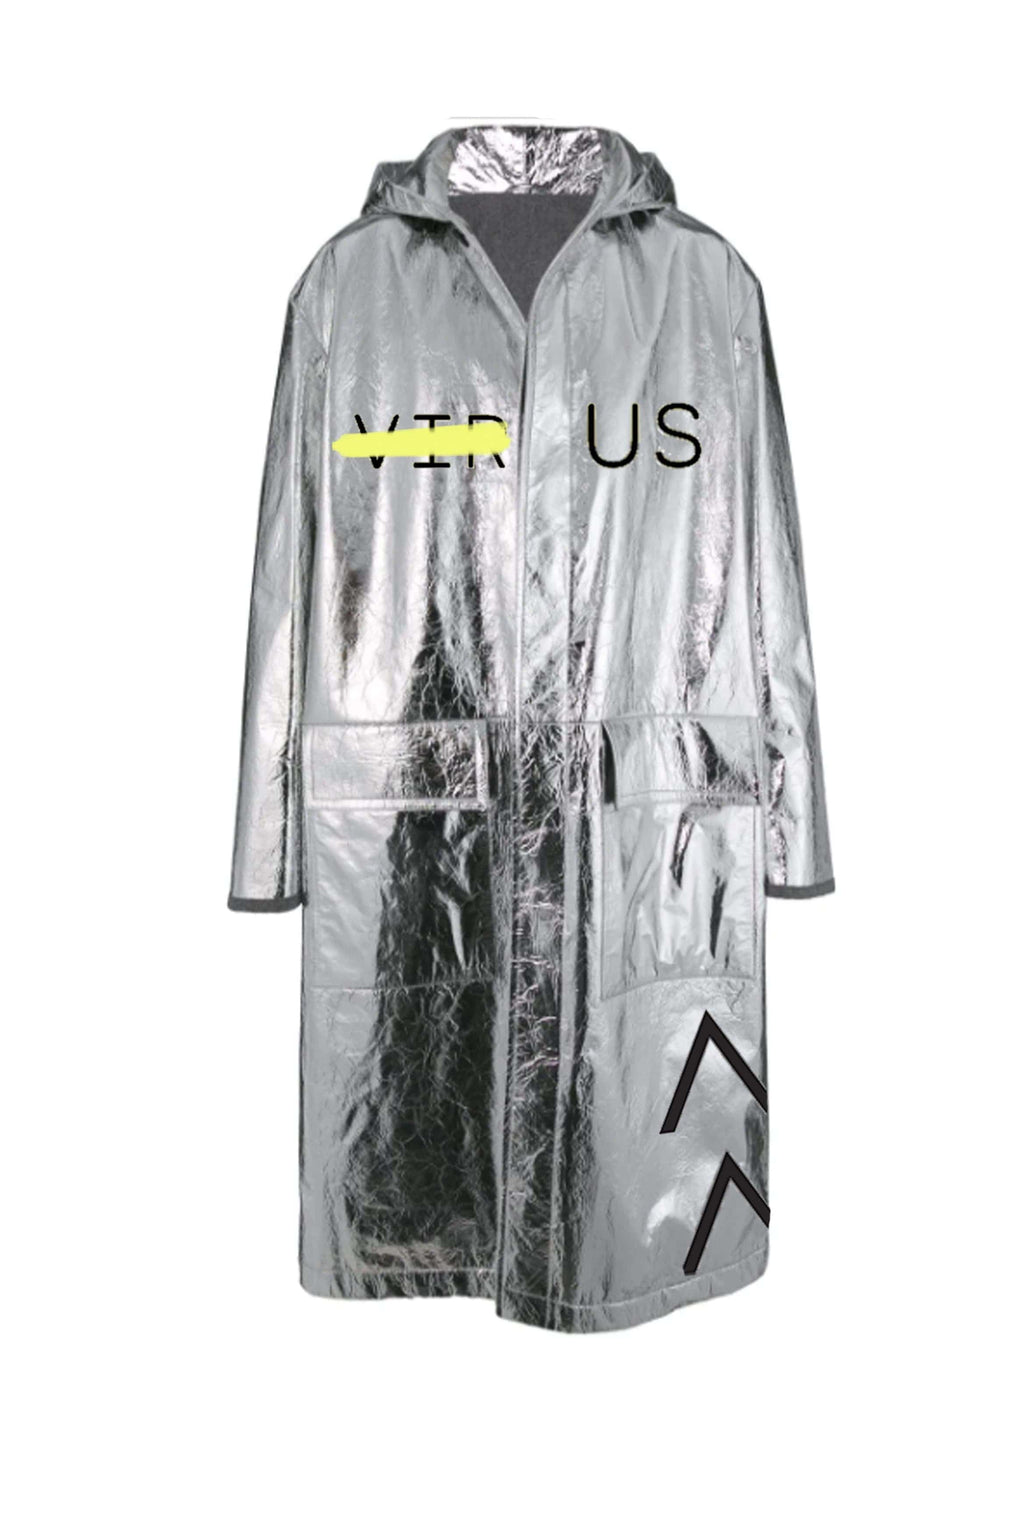 Silver Raincoat With Front Flap Pockets - BYTRIBUTE